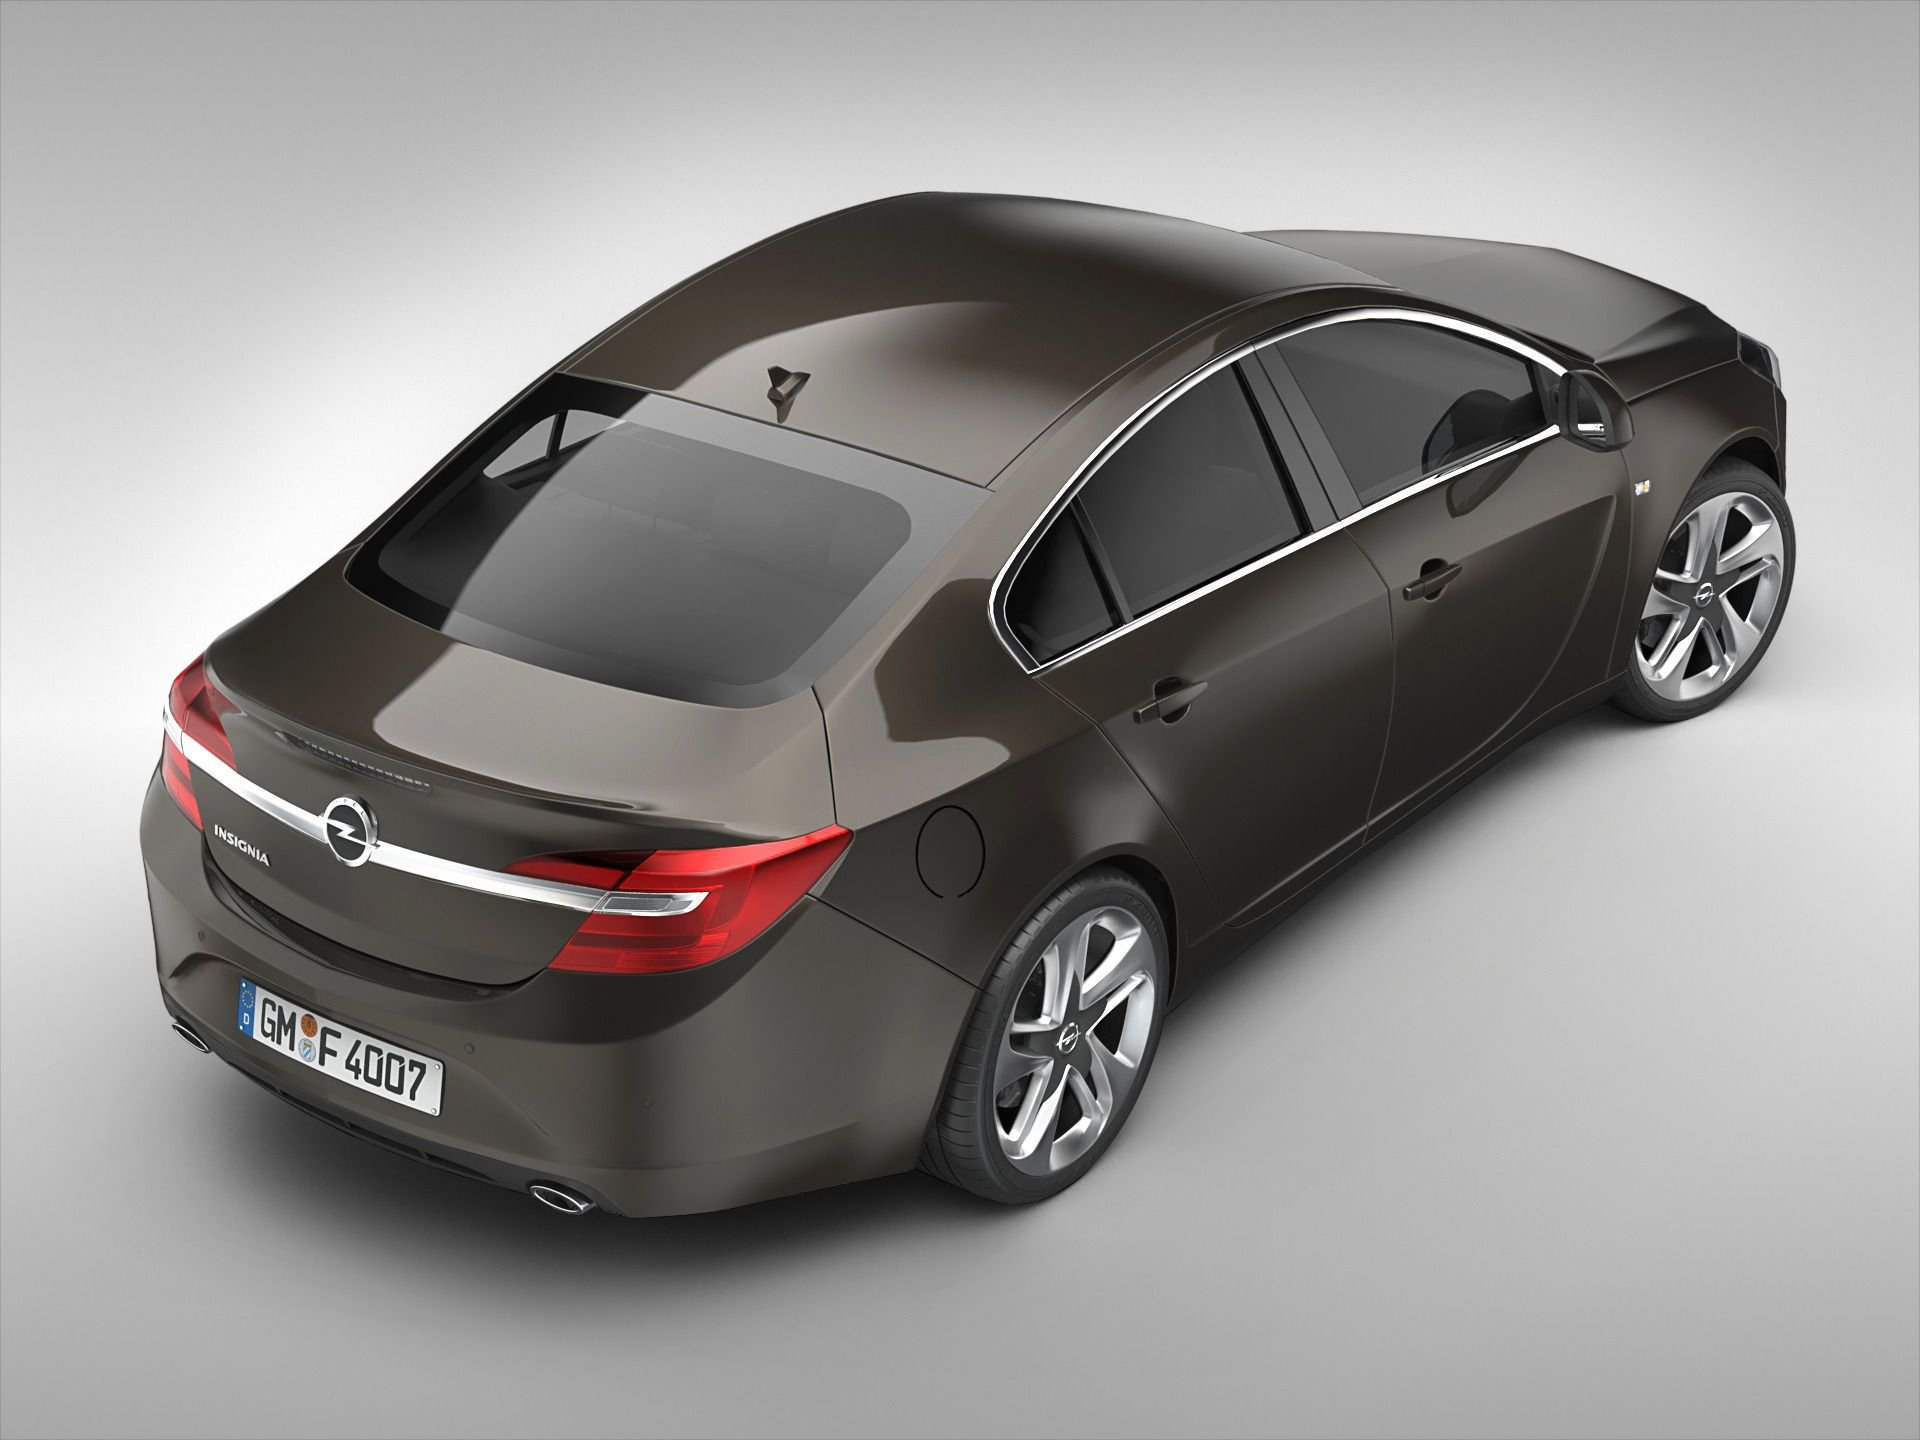 New Opel Insignia 2014 3D Model Max Obj 3Ds Fbx C4D Ma Mb On This Month